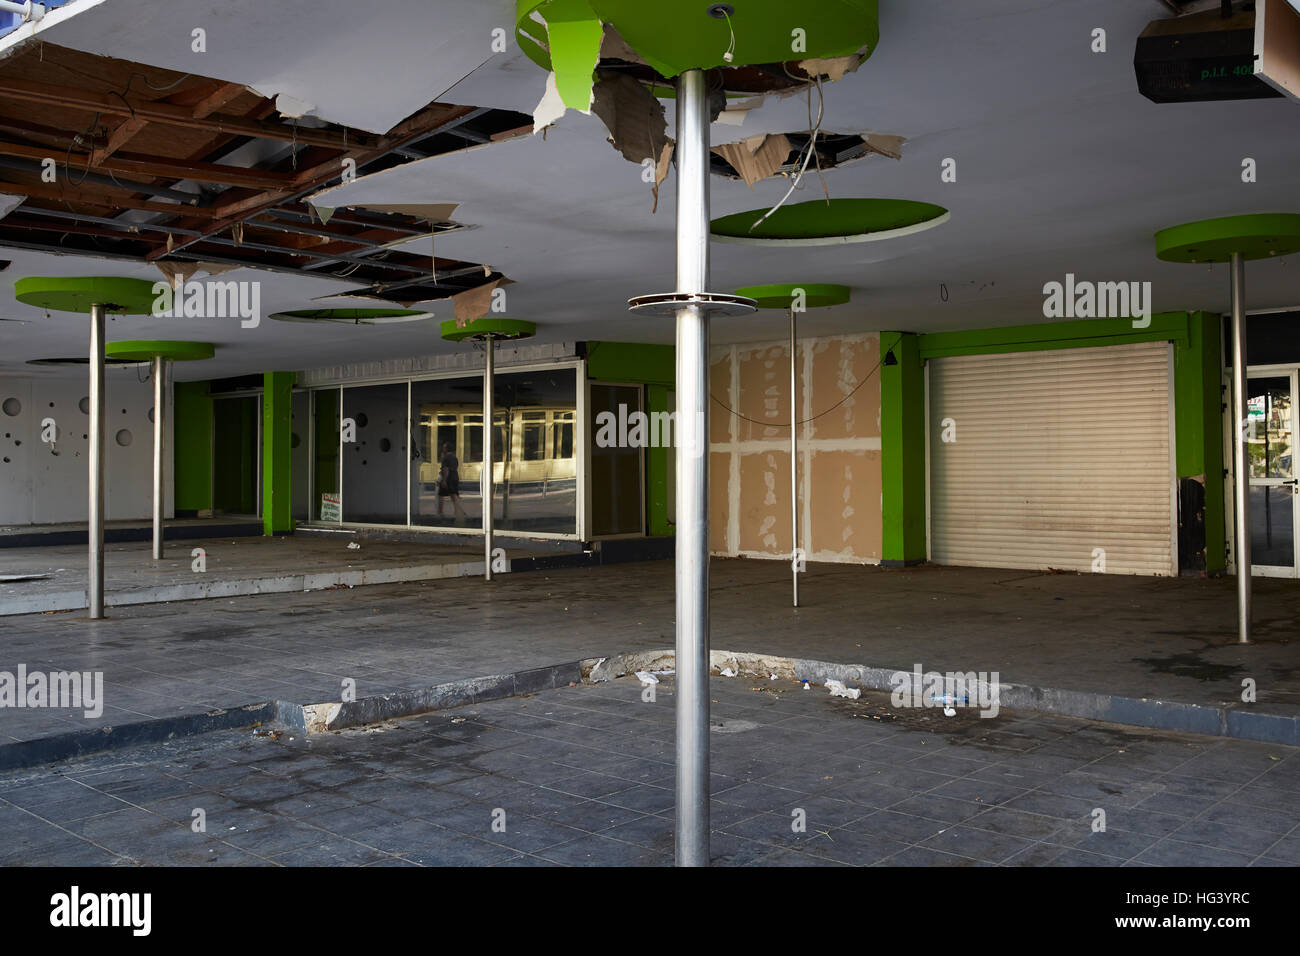 Paphos, Cyprus. Interior view of a derelict building. - Stock Image